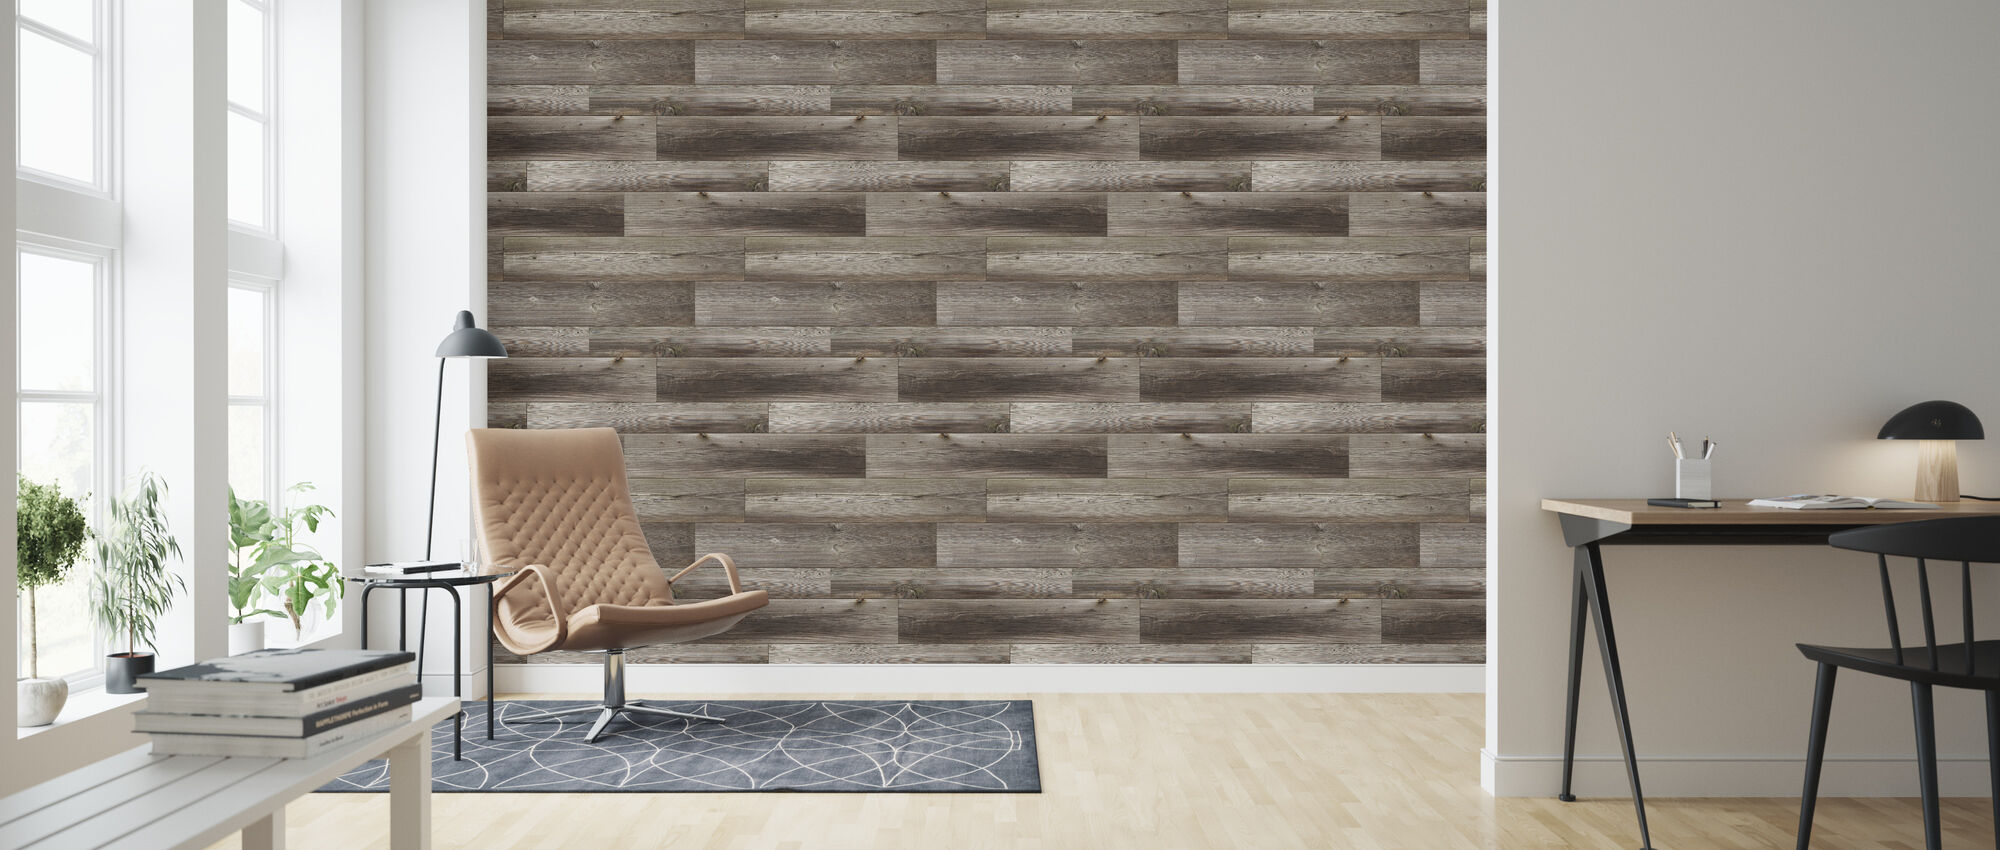 Connected Wood - Wallpaper - Living Room